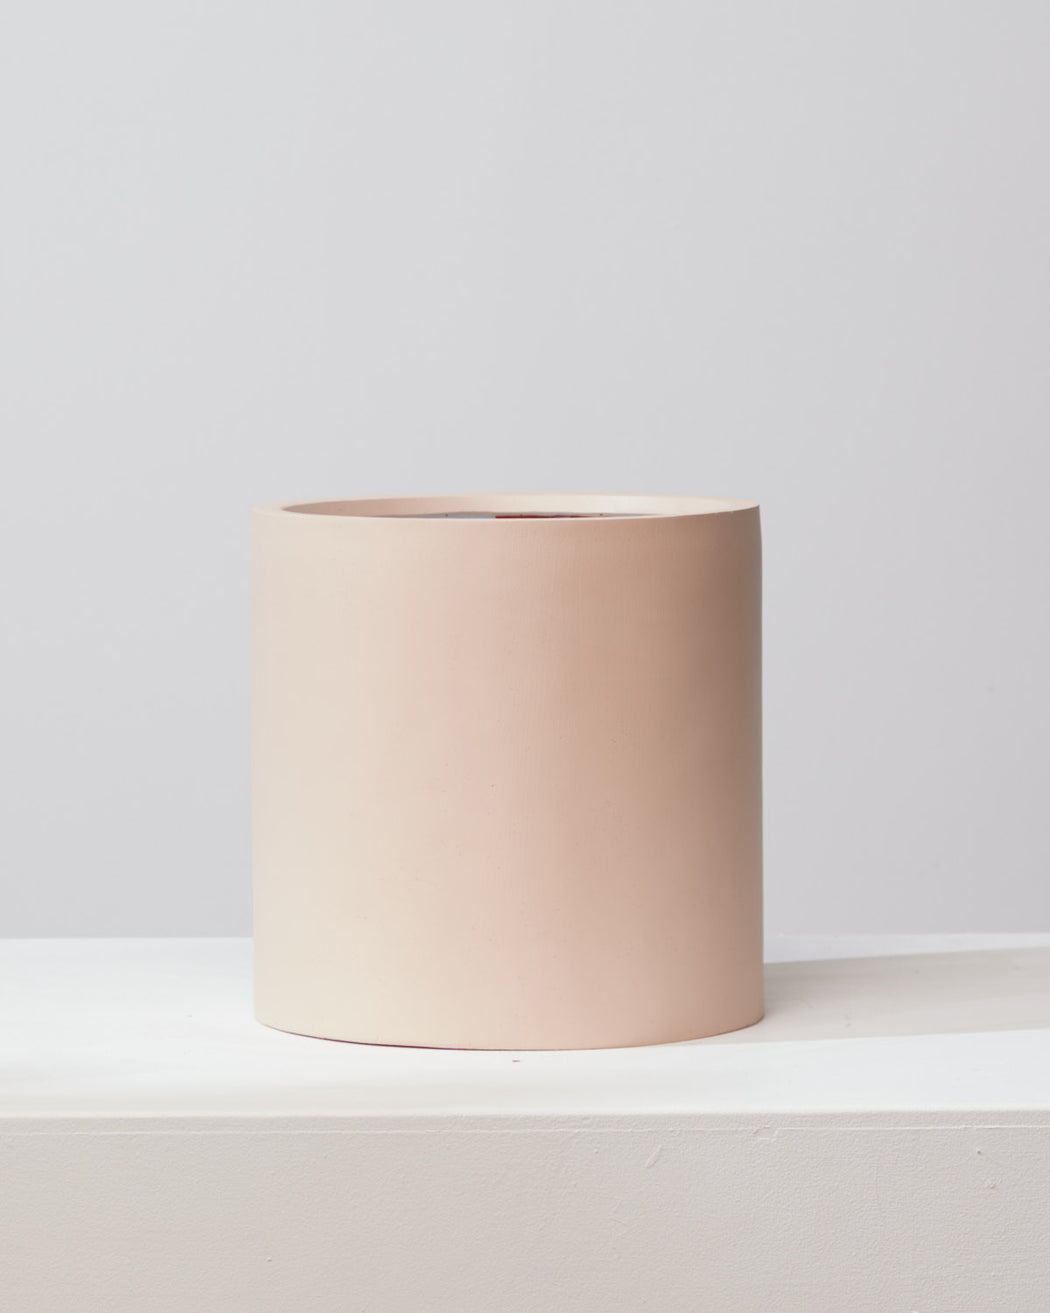 COMMON HOUSE - 'BAKED CLAY' CYLINDER PLANTER - Medium 12 Inch